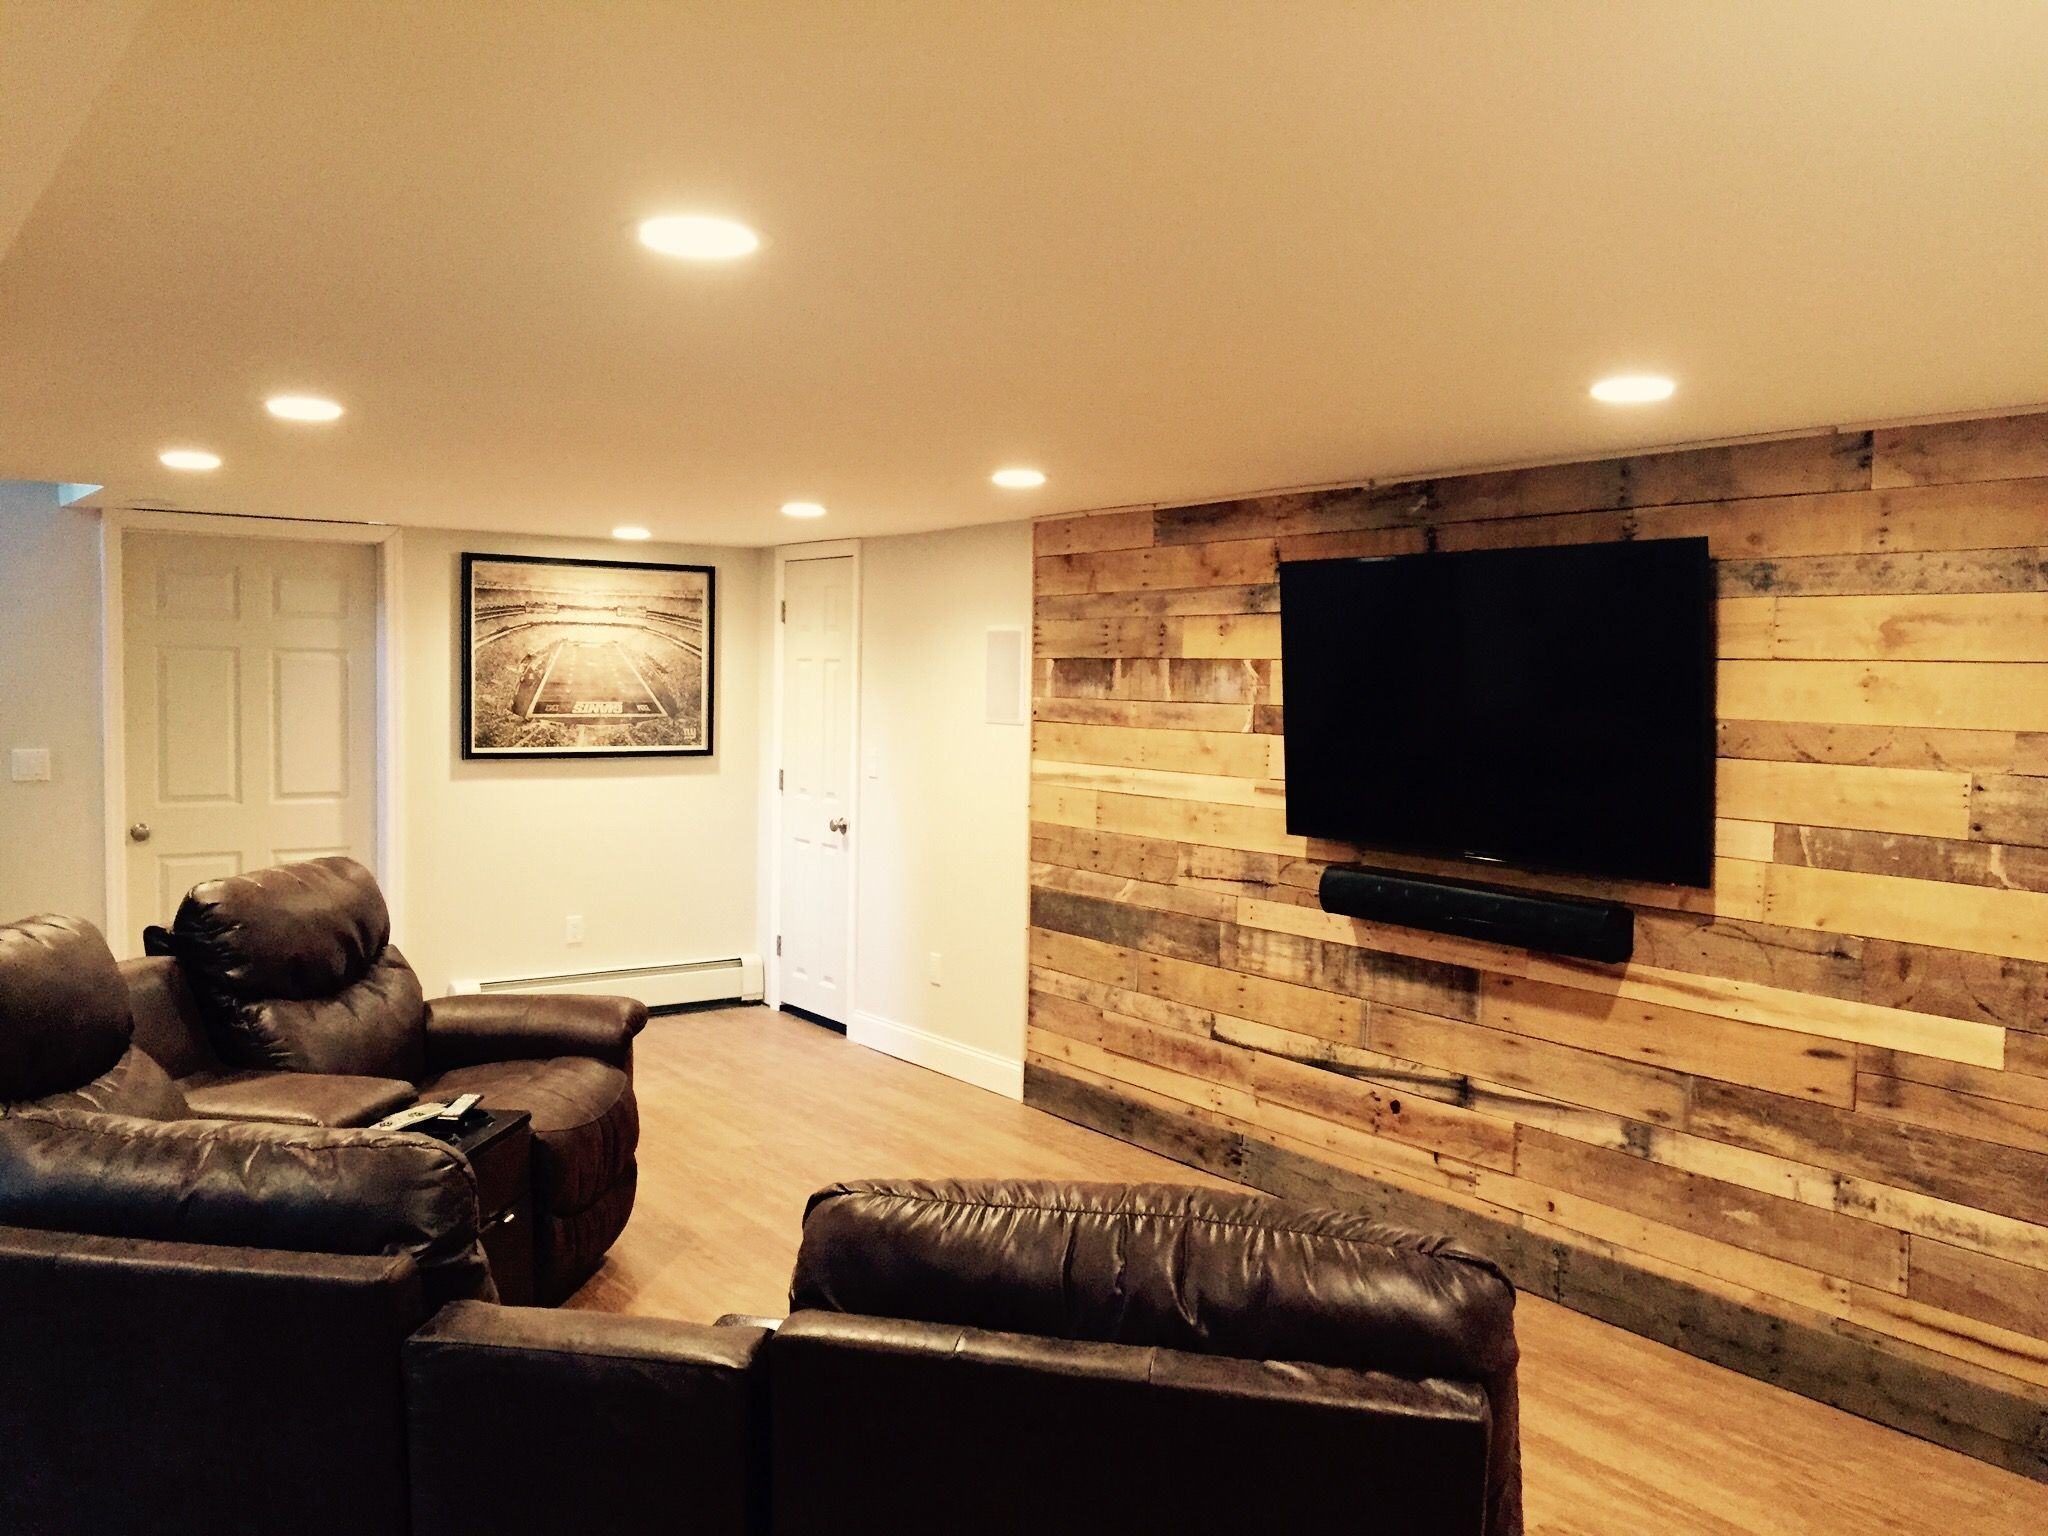 pallet wall in our finished basement dave cave cost 0 rh pinterest com cost to finish a basement canada cost to finish a basement ottawa